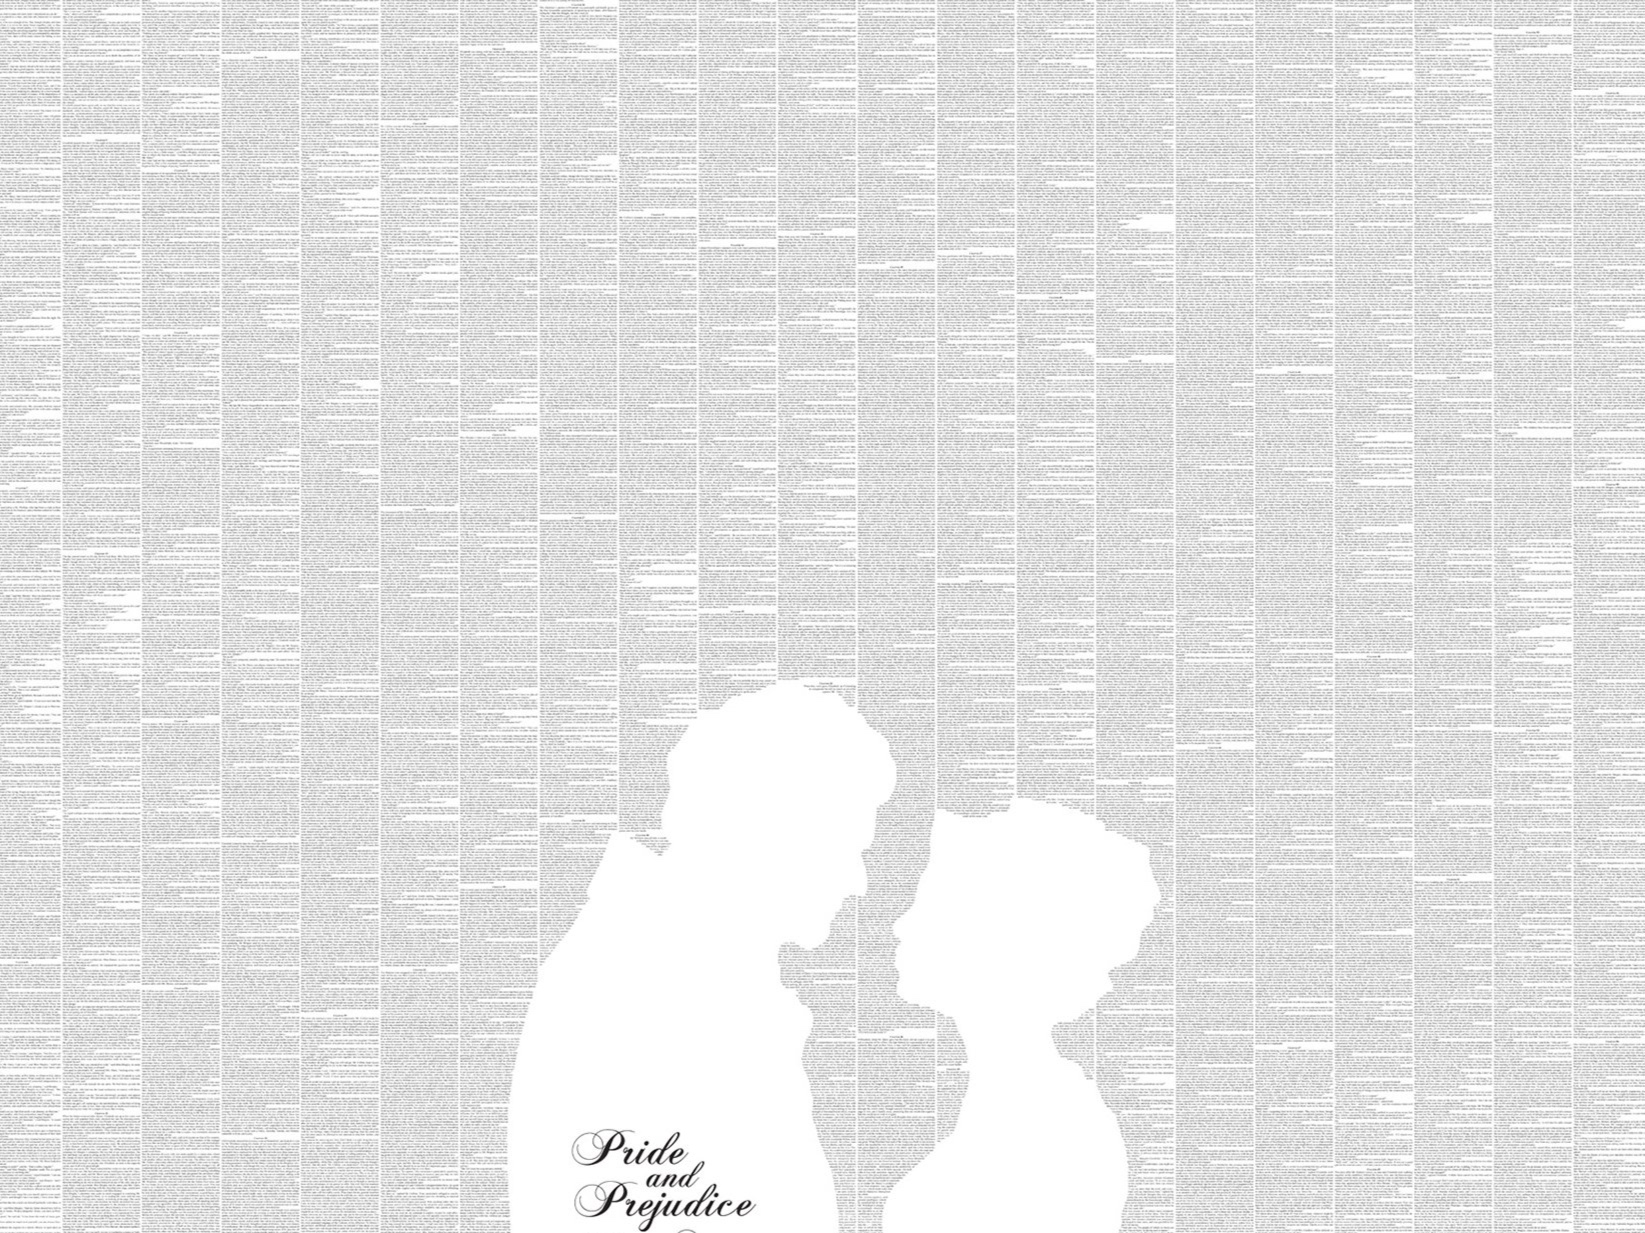 SP284-Pride-and-Prejudice-100x70-_Oak.jpg